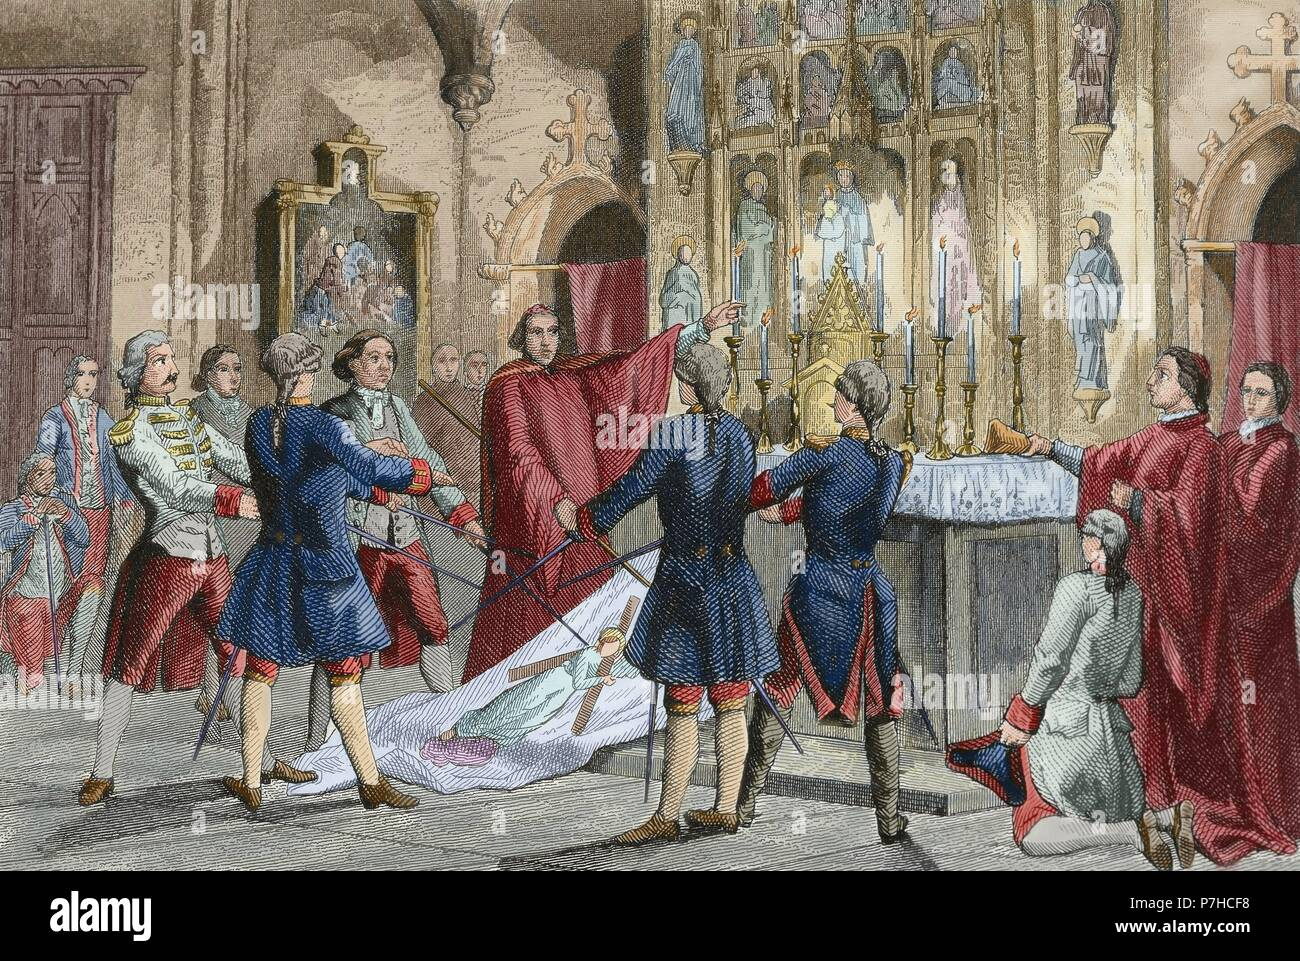 War of Spanish Succession (1702-1715). Oath of the captains of Barcelona who commands the troops of Antonio de Villarroel, Commander in Chief of the Army of Catalonia. Engraving by Urbadieta and J. Nicolau. 19th century. Colored. Stock Photo